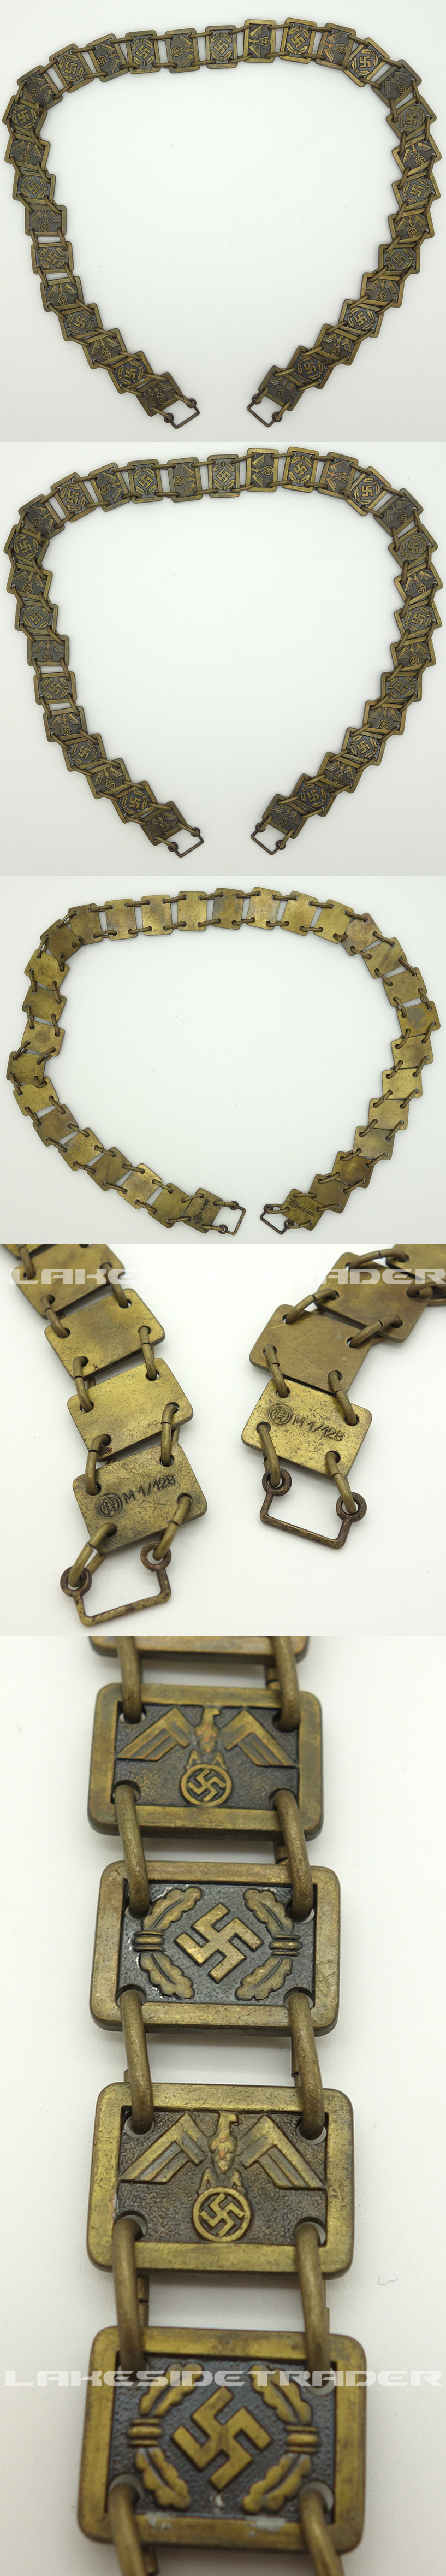 NSDAP Political Leaders Gorget Chain by RZM M1/128